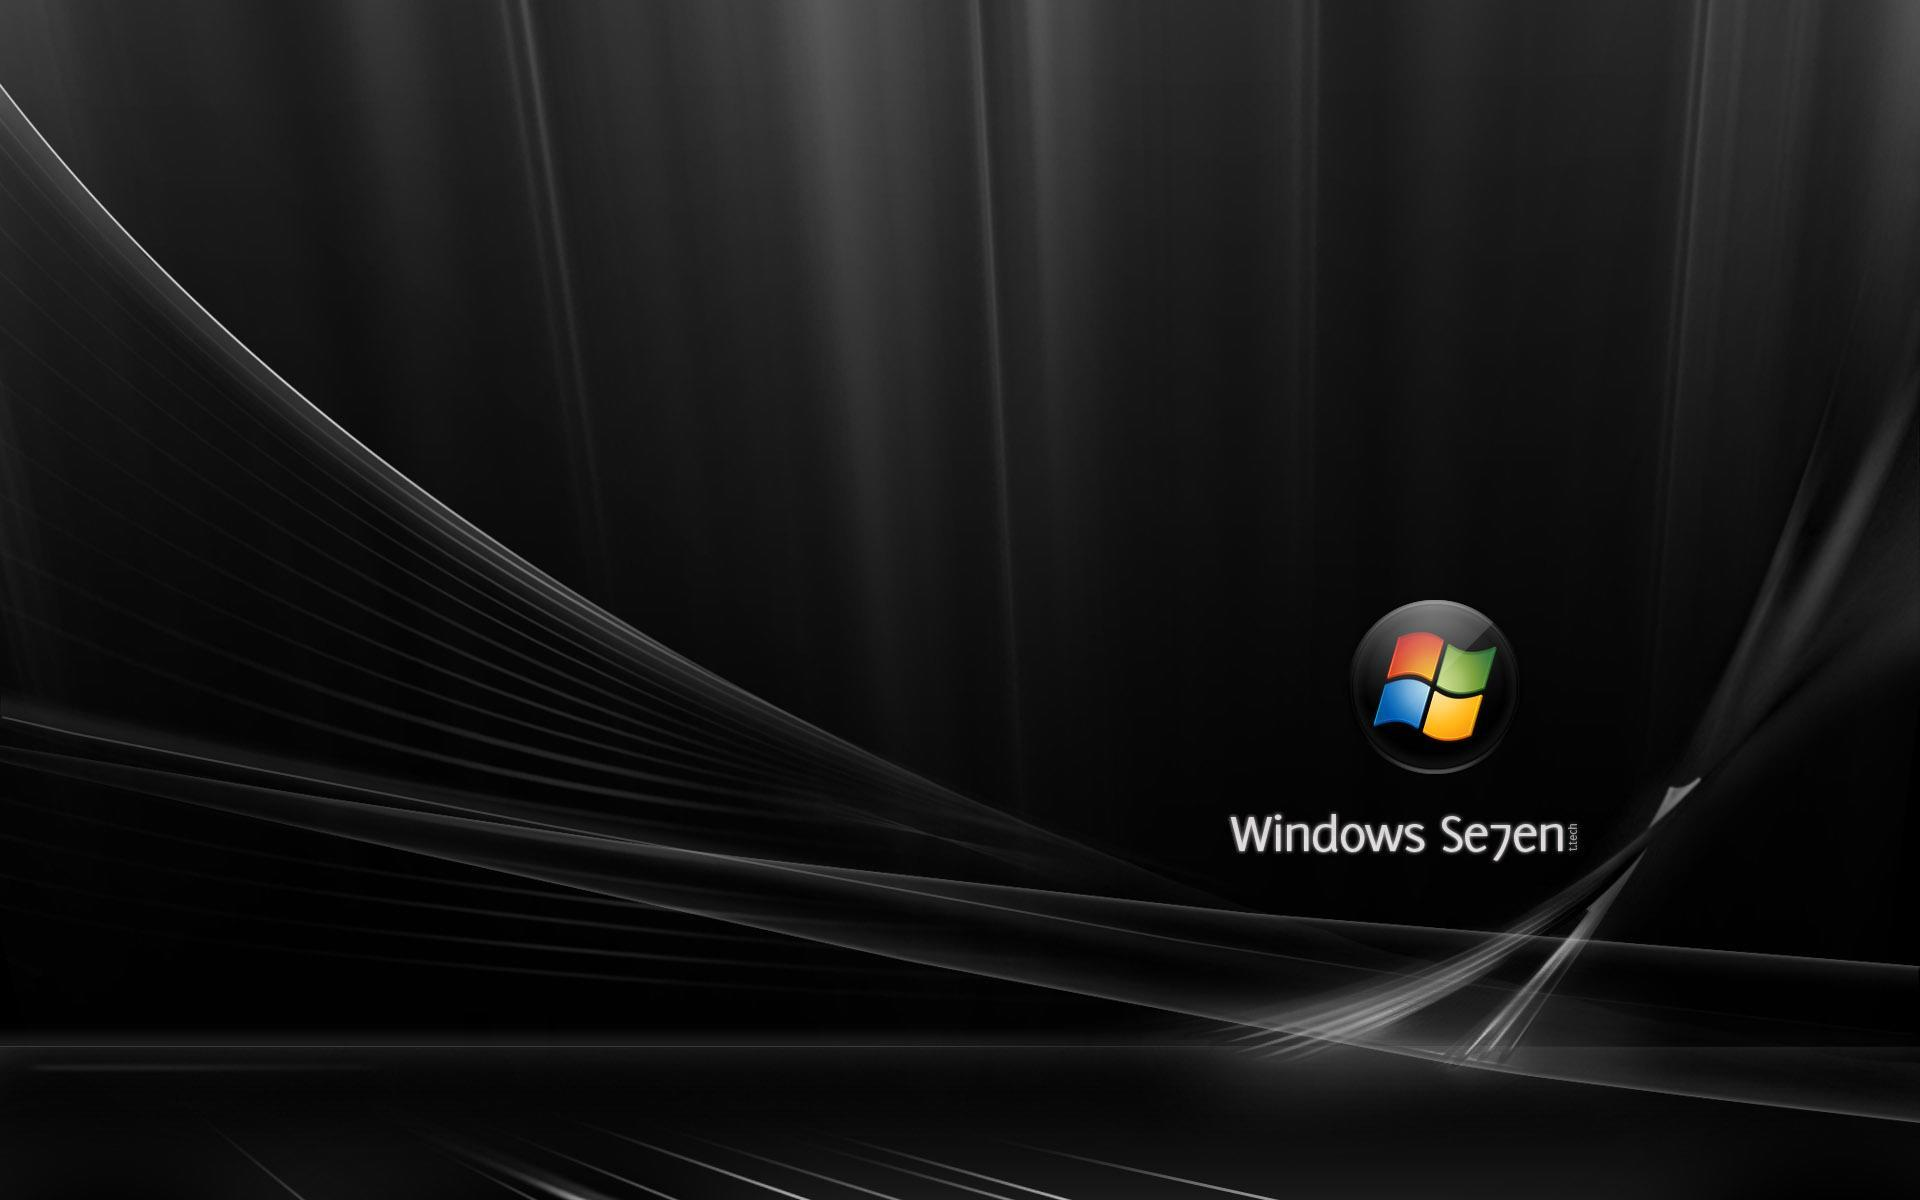 Windows 7 Wallpaper Hd wallpaper   510044 1920x1200